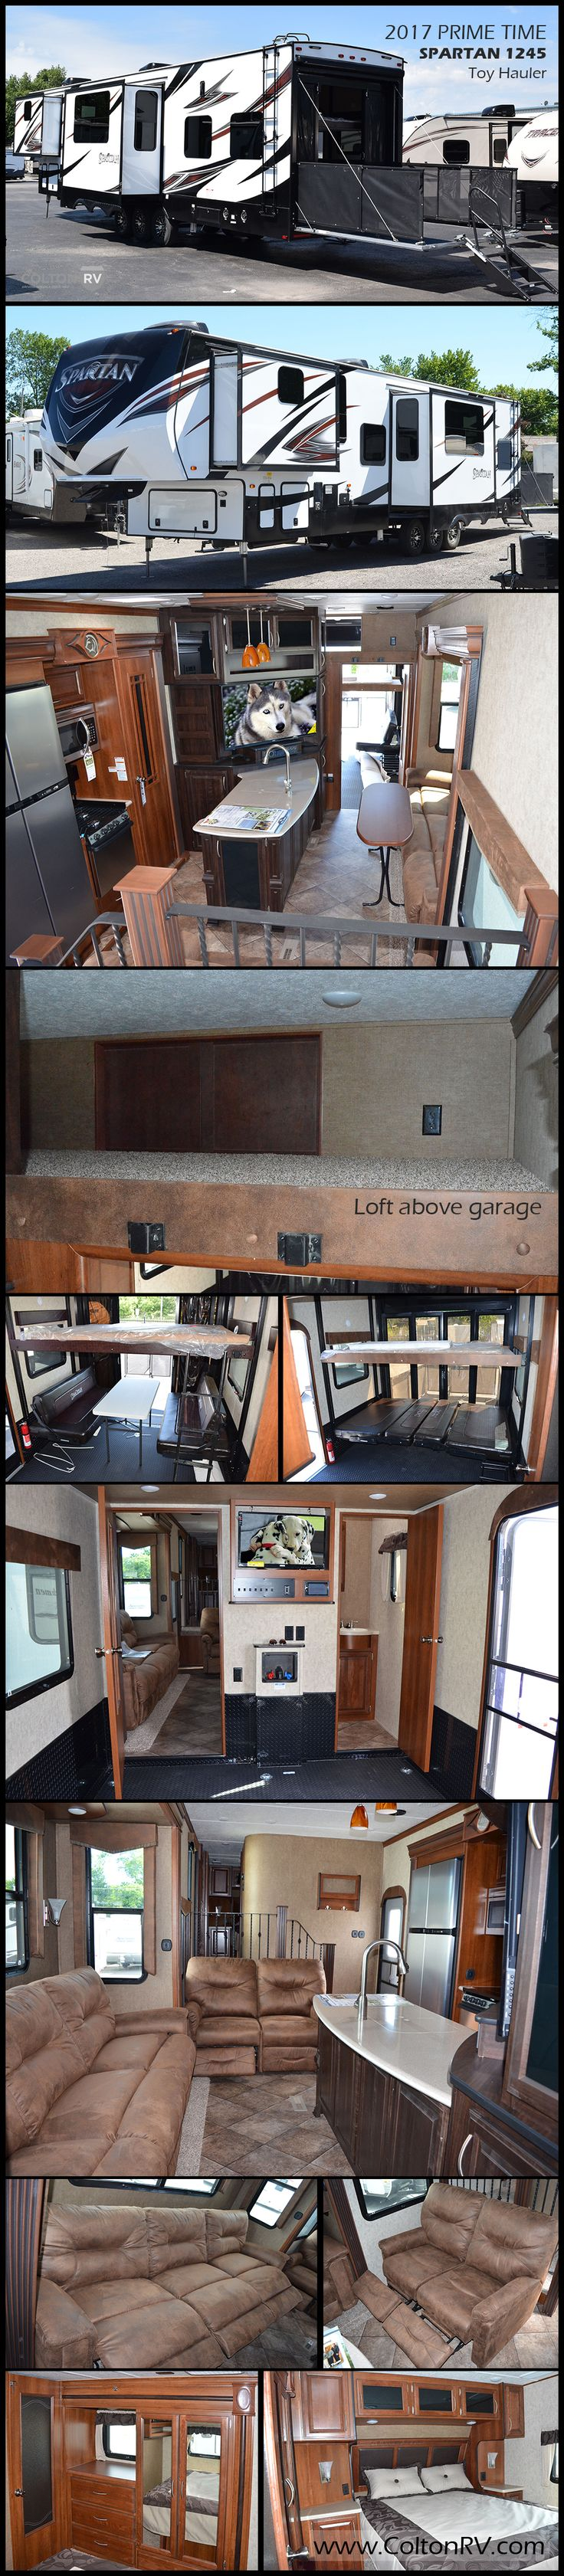 The PRIME TIME SPARTAN 1245 fifth wheel TOY HAULER makes it easy to load up your family, your off-road toys and start your next weekend adventure. With a large cargo area, a bath and a half, triple slides and a loft there is plenty of space for the whole gang!